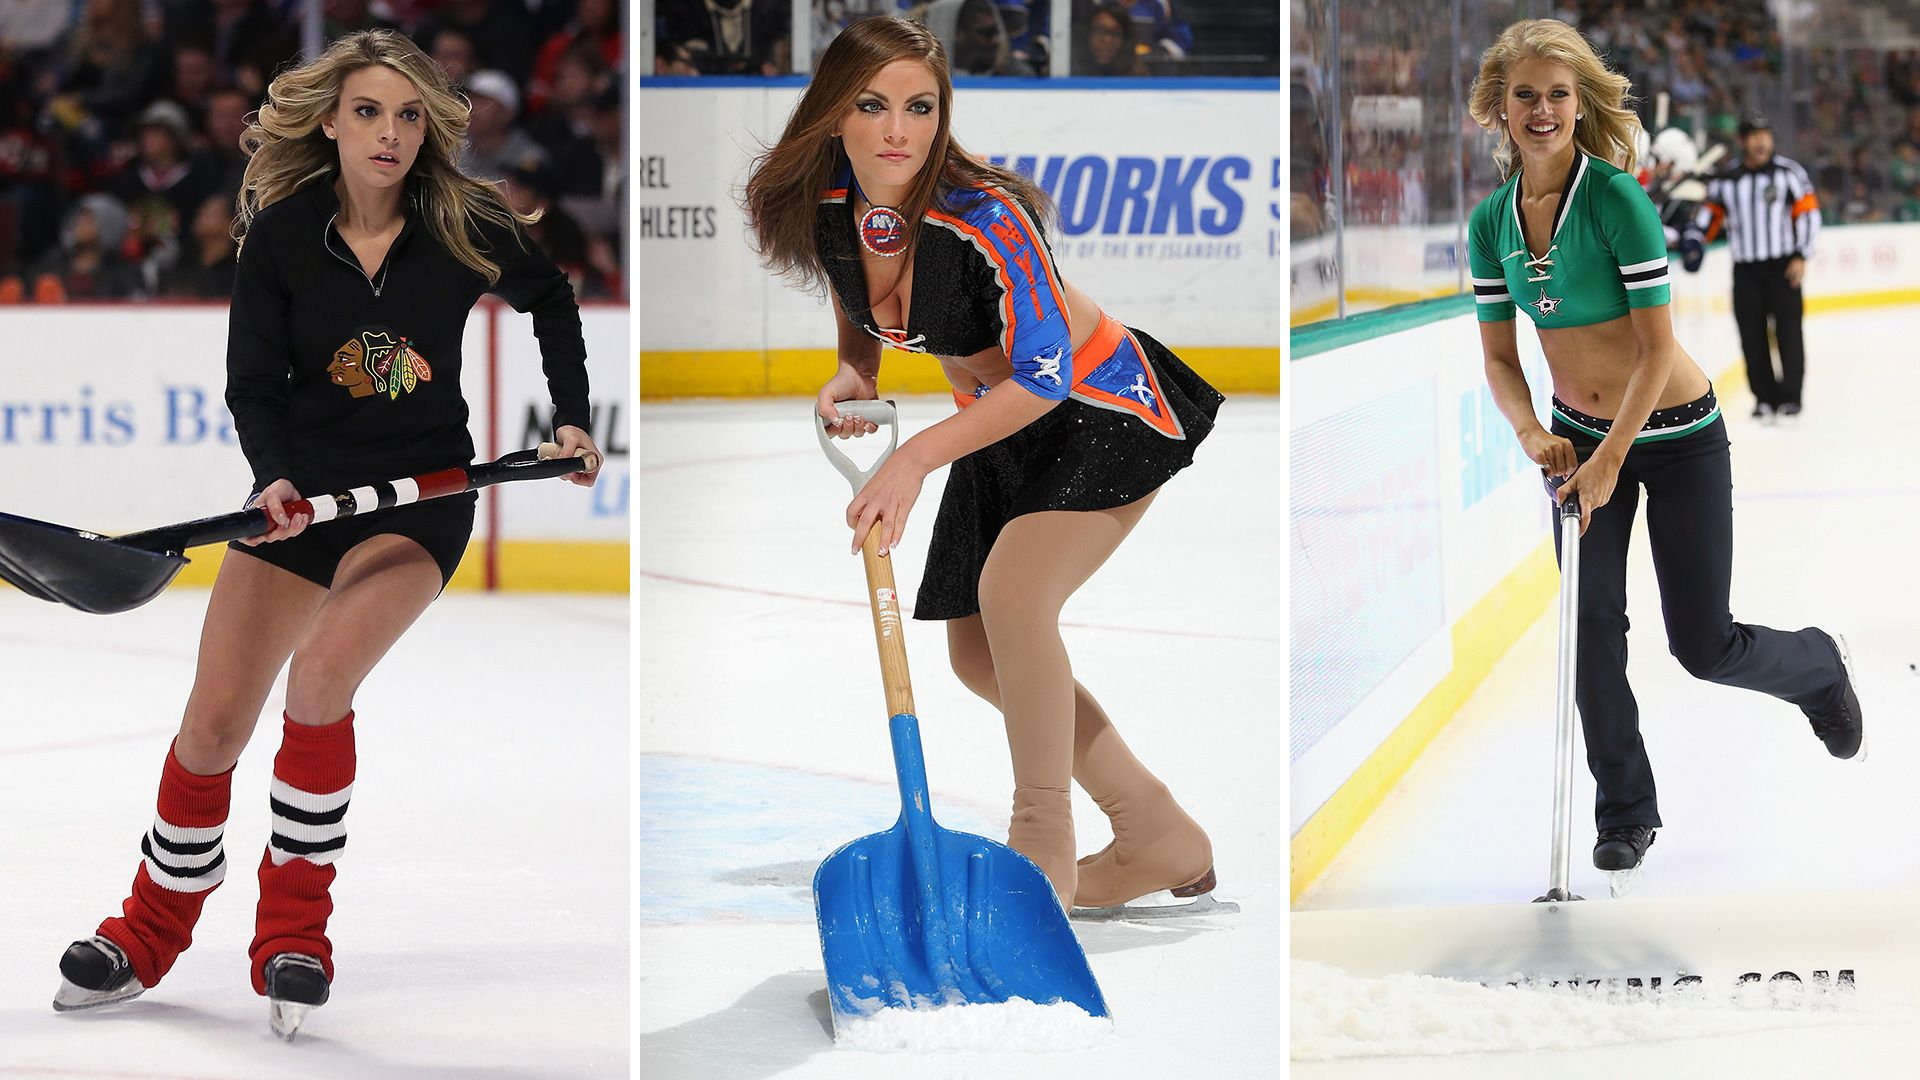 Top 10 Hottest NHL Ice Dancers